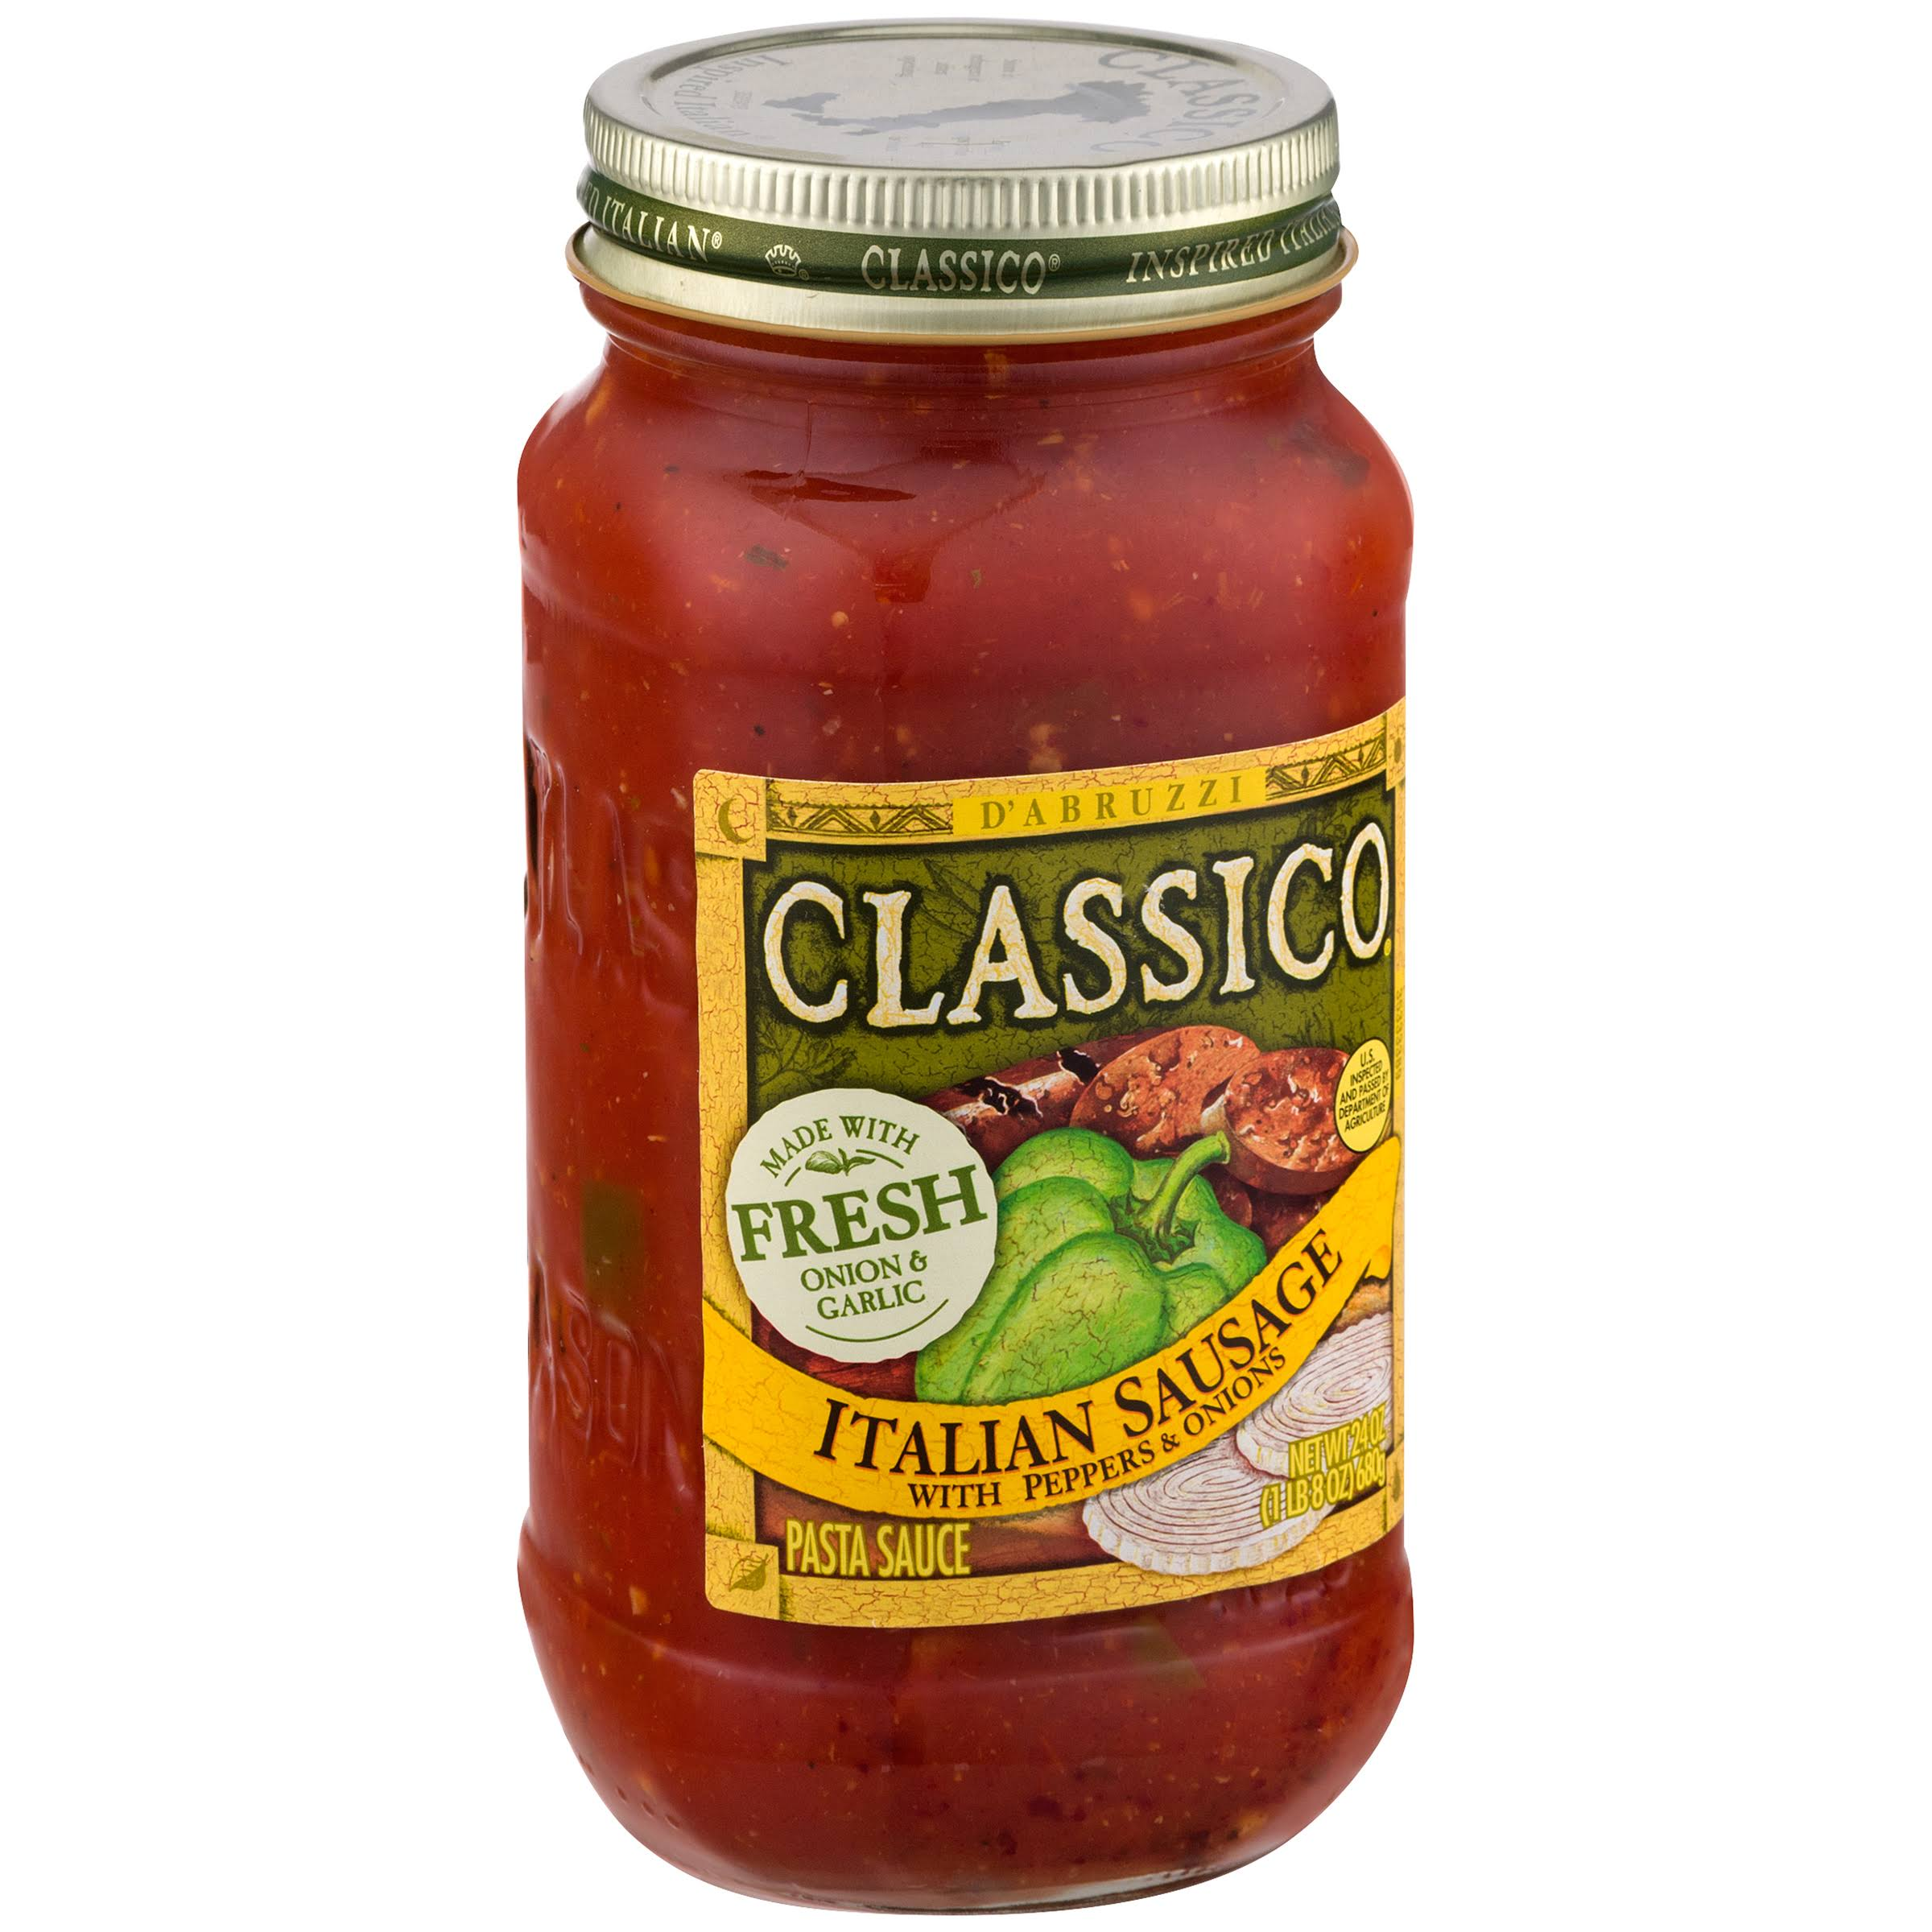 Classico Italian Sausage with Peppers and Onions Pasta Sauce - 24oz